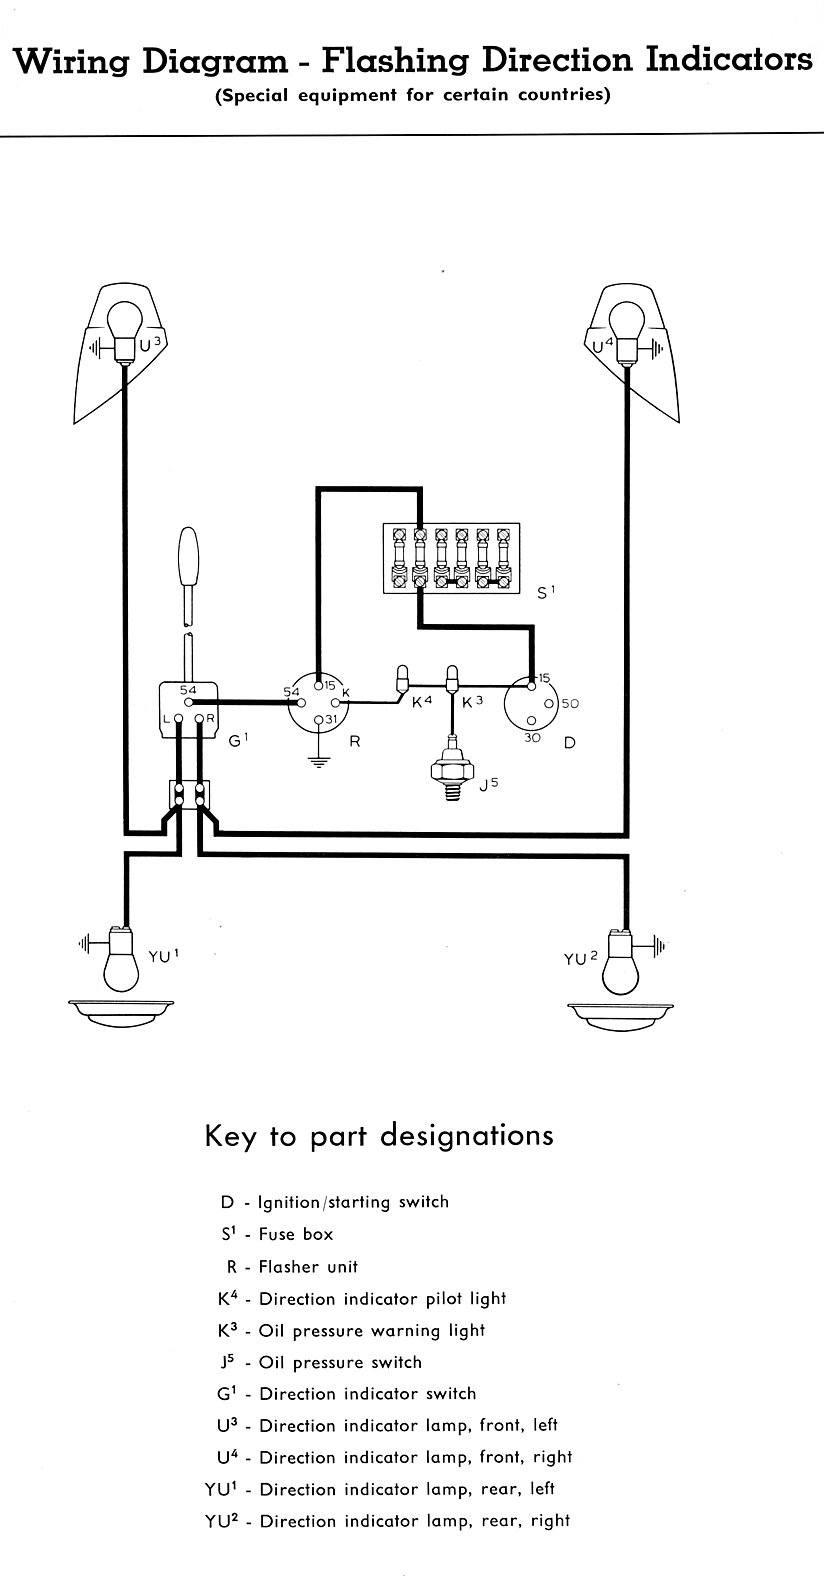 Type 2 Wiring Diagrams 1972 Mg Midget Ignition Diagram Turn Signal